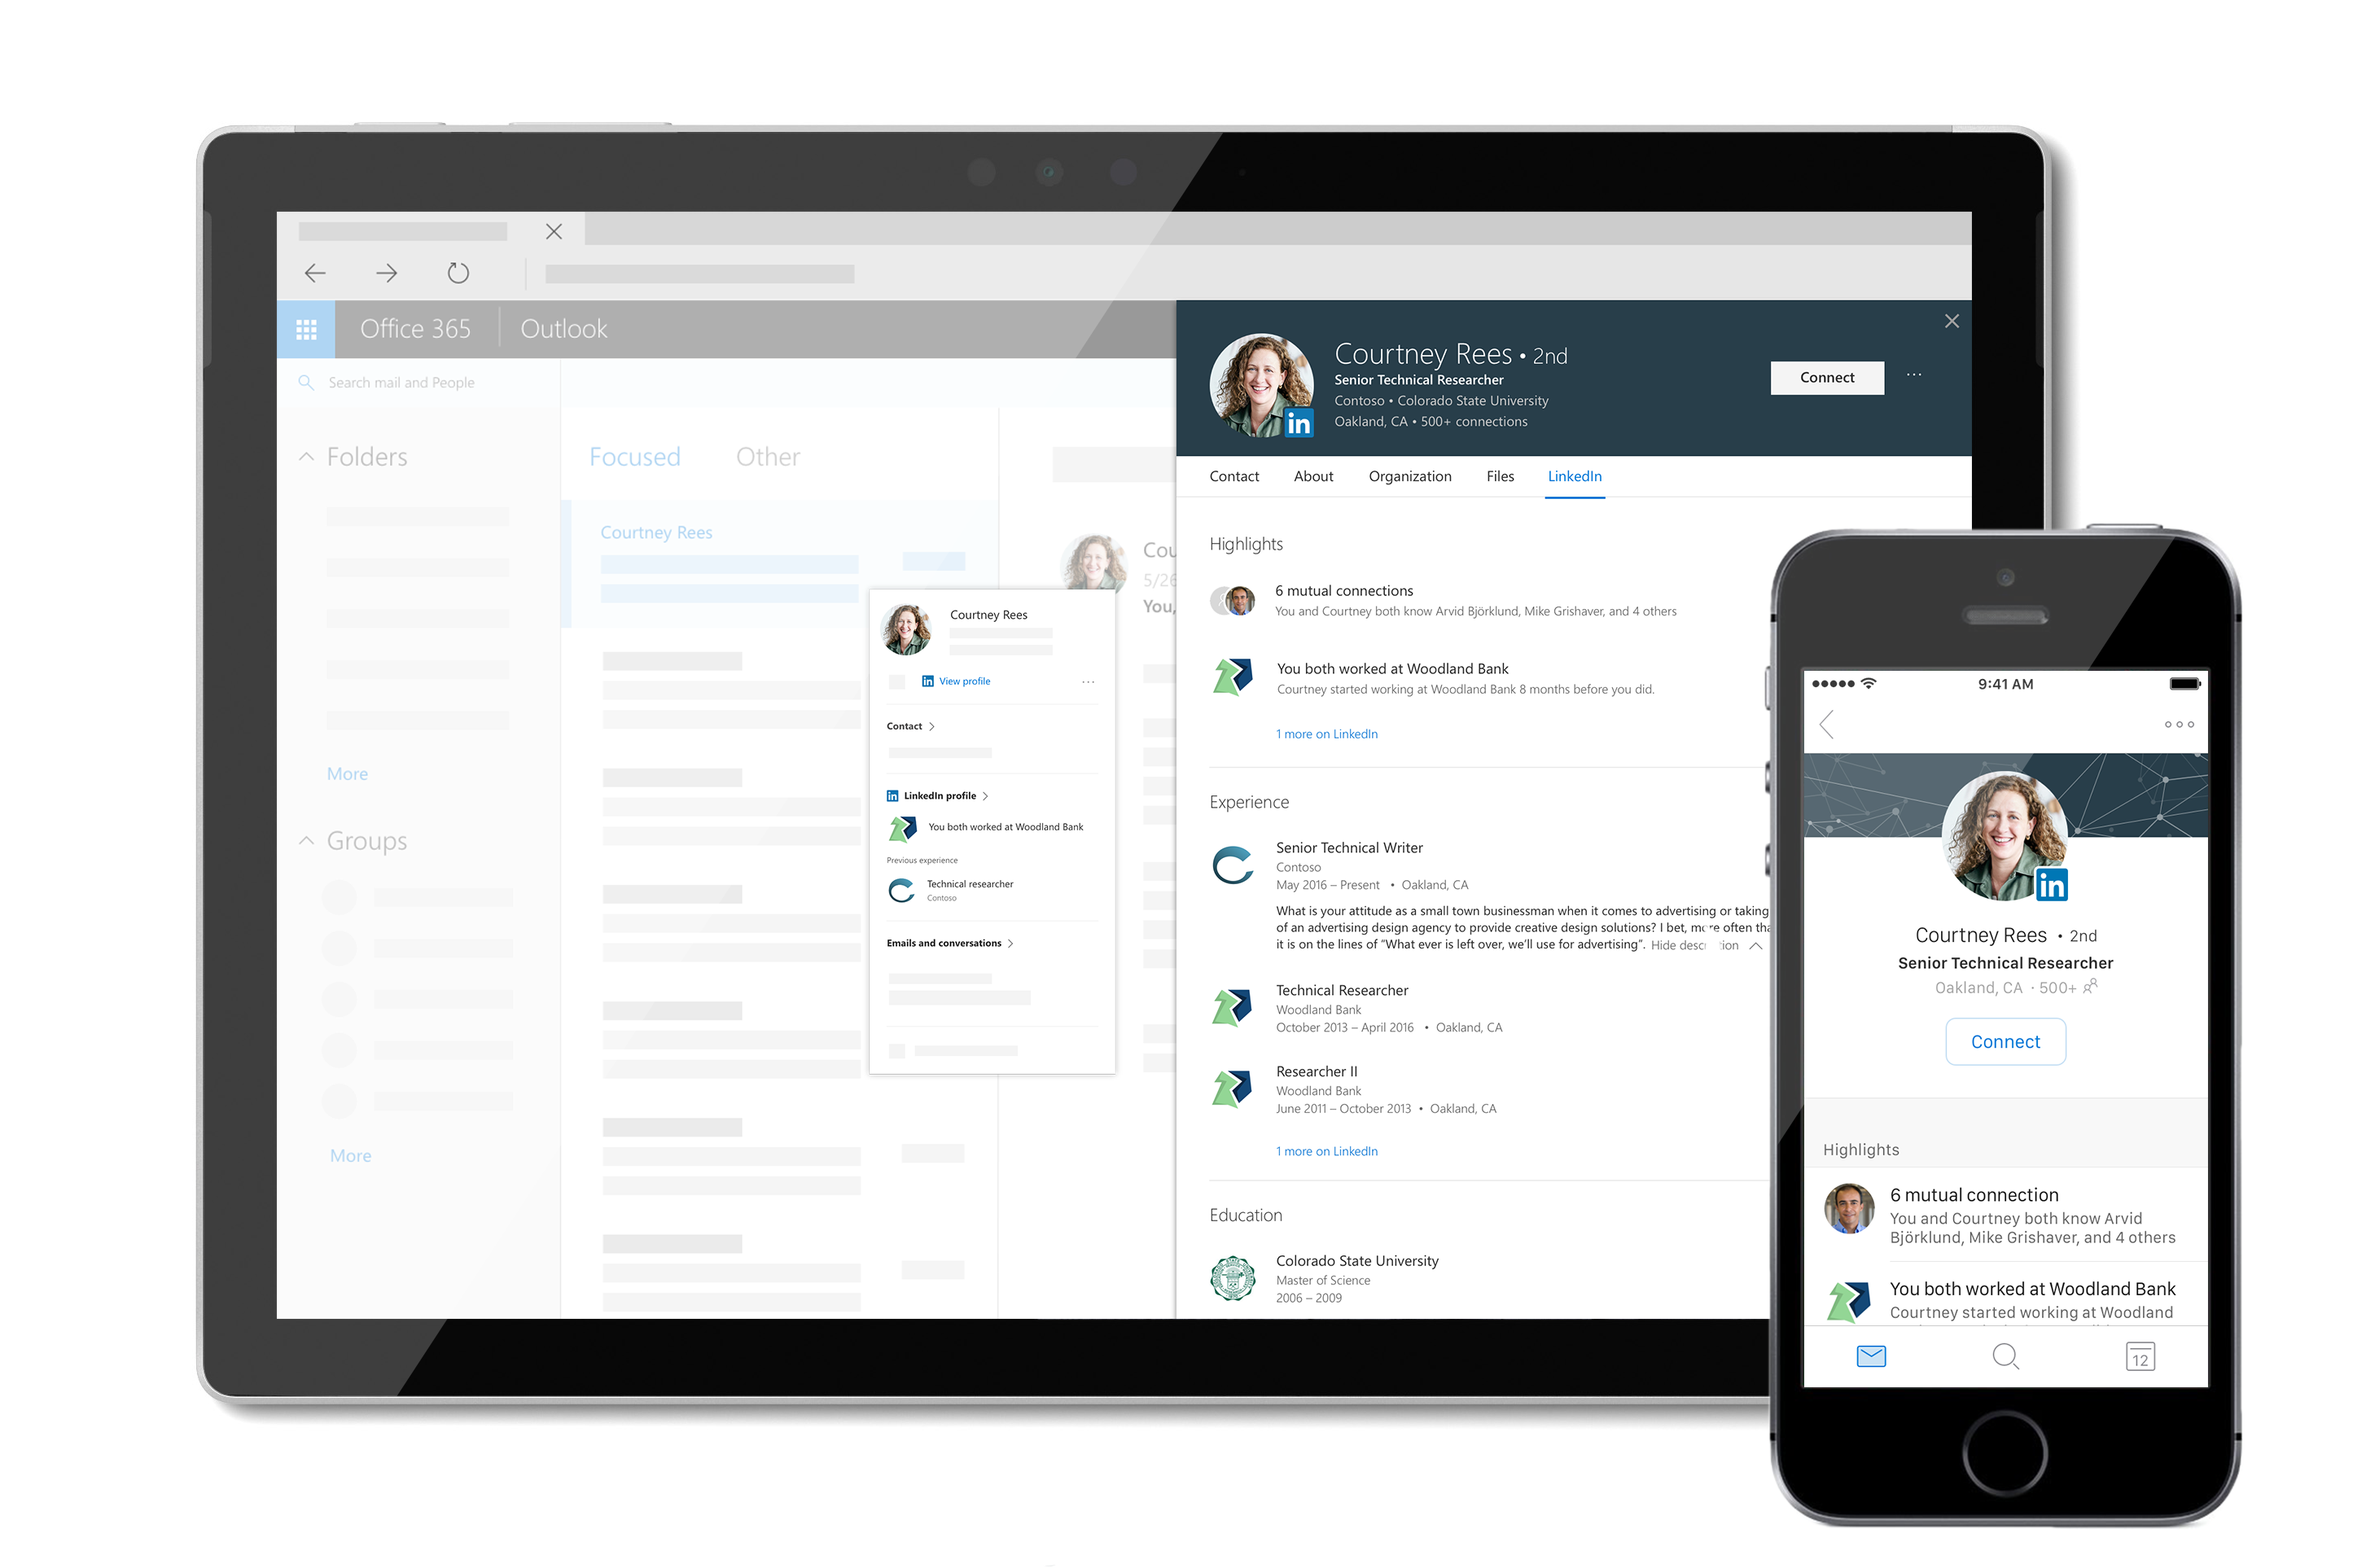 Adding Linkedin\'s Profile Card on Office 365 Offers a Simple Way to ...